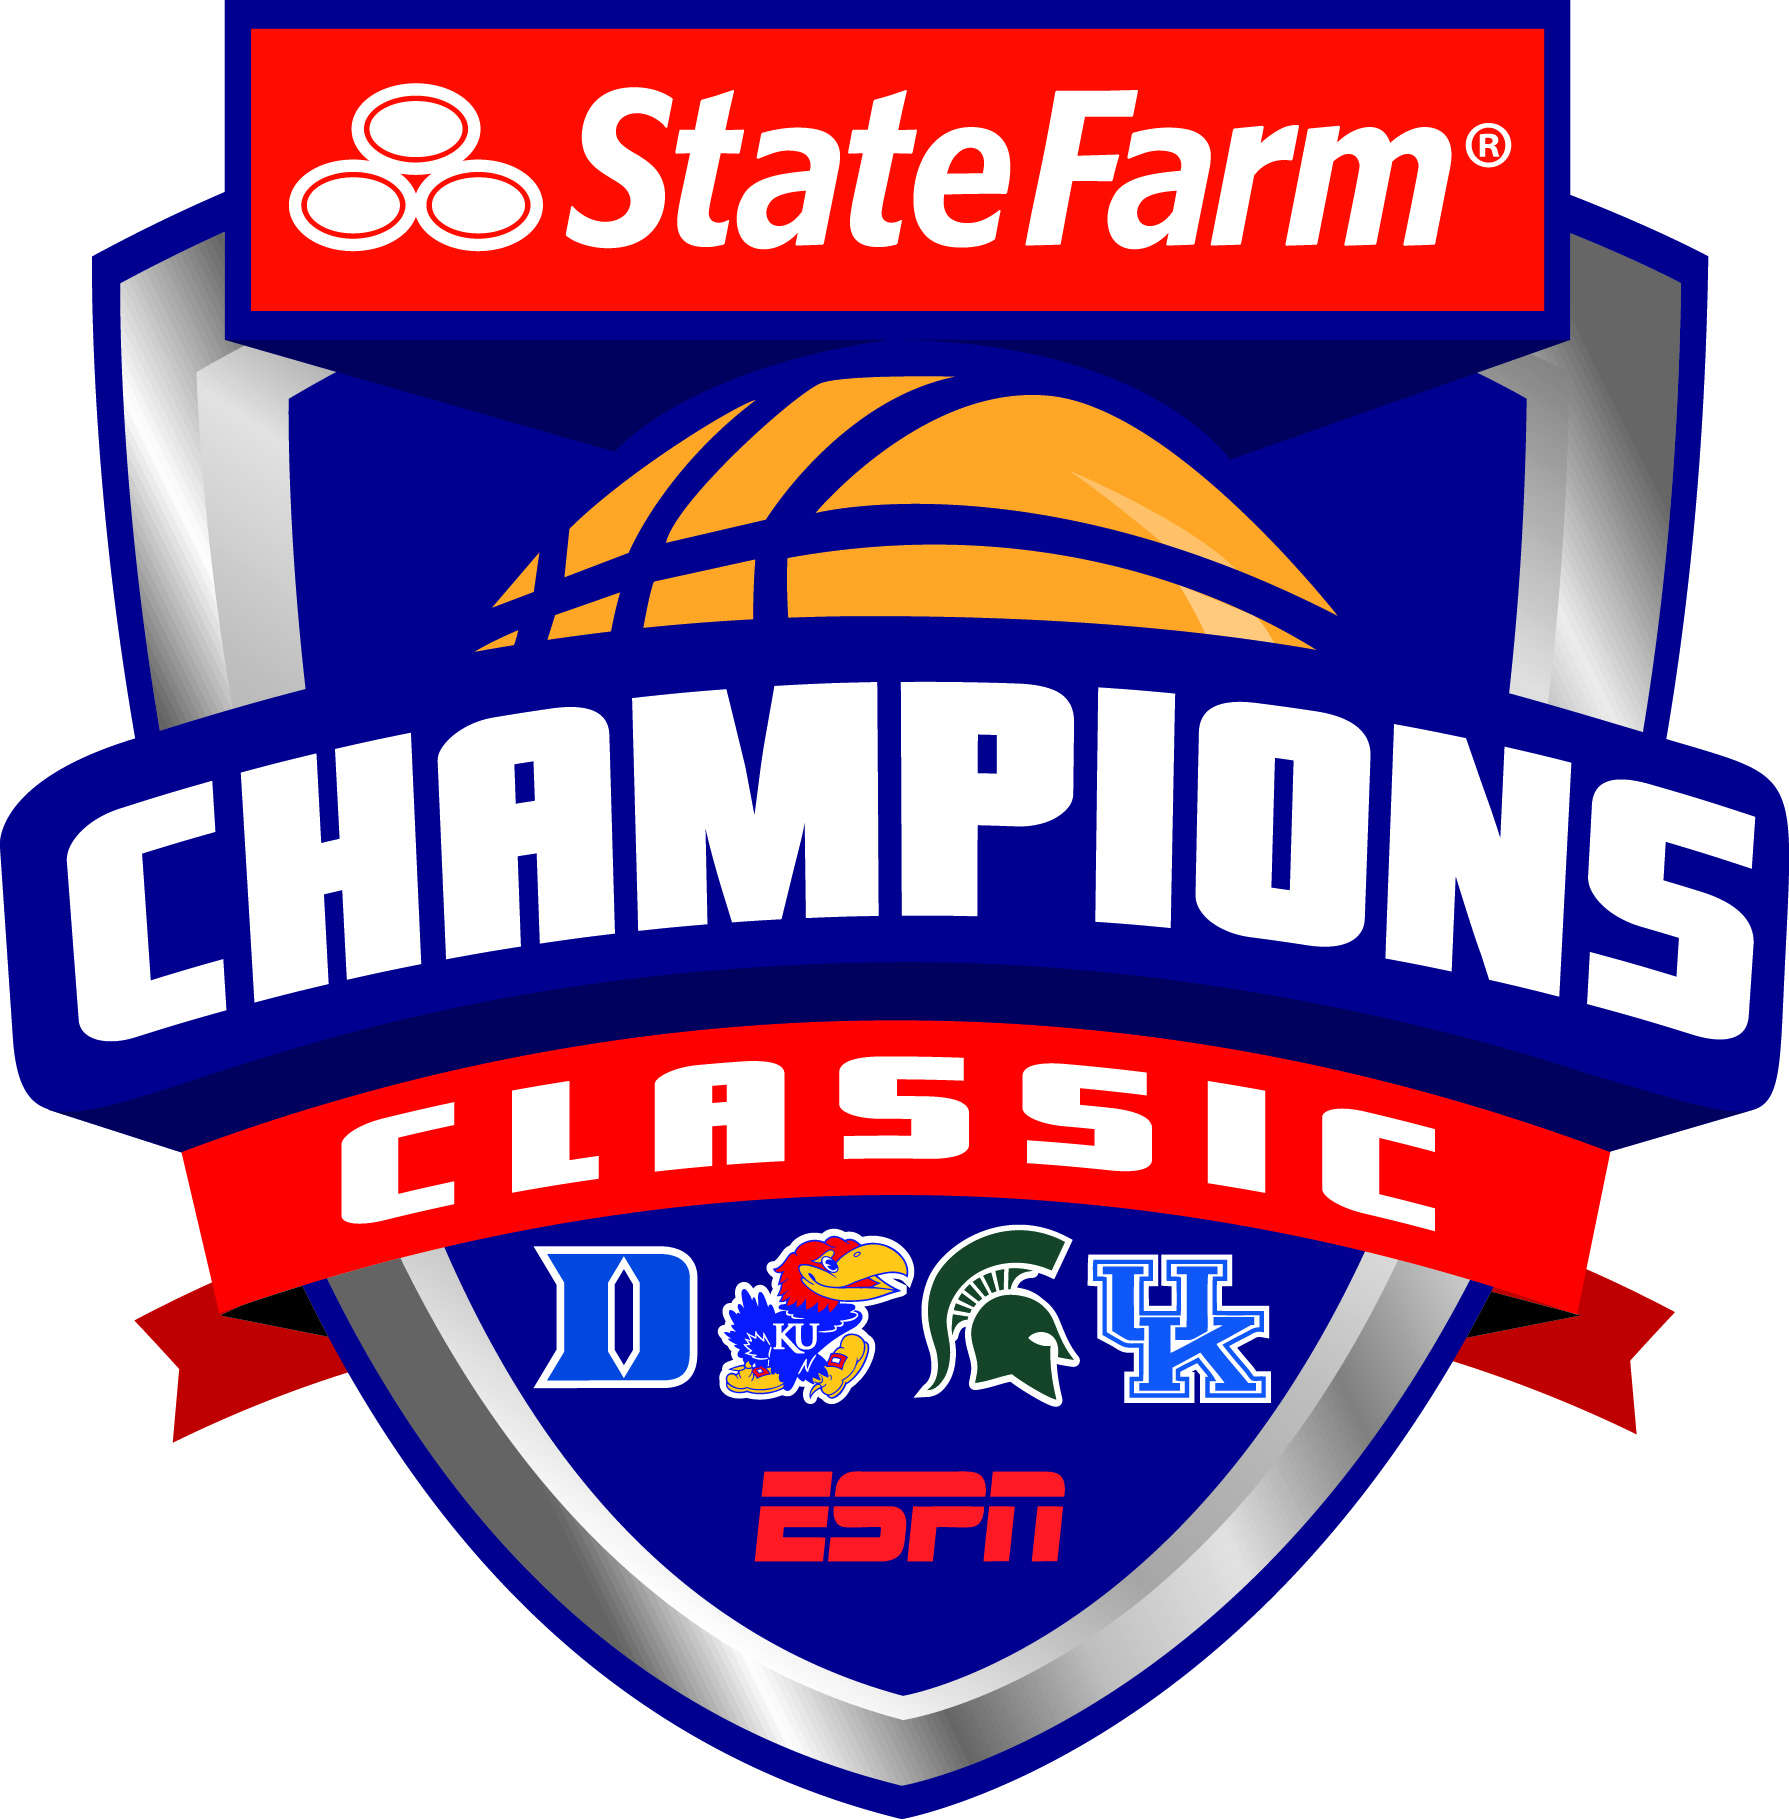 Game Preview by @RandyDunson: Duke vs. Kentucky (Game 1 – 2015 State Farm Champions Classic)